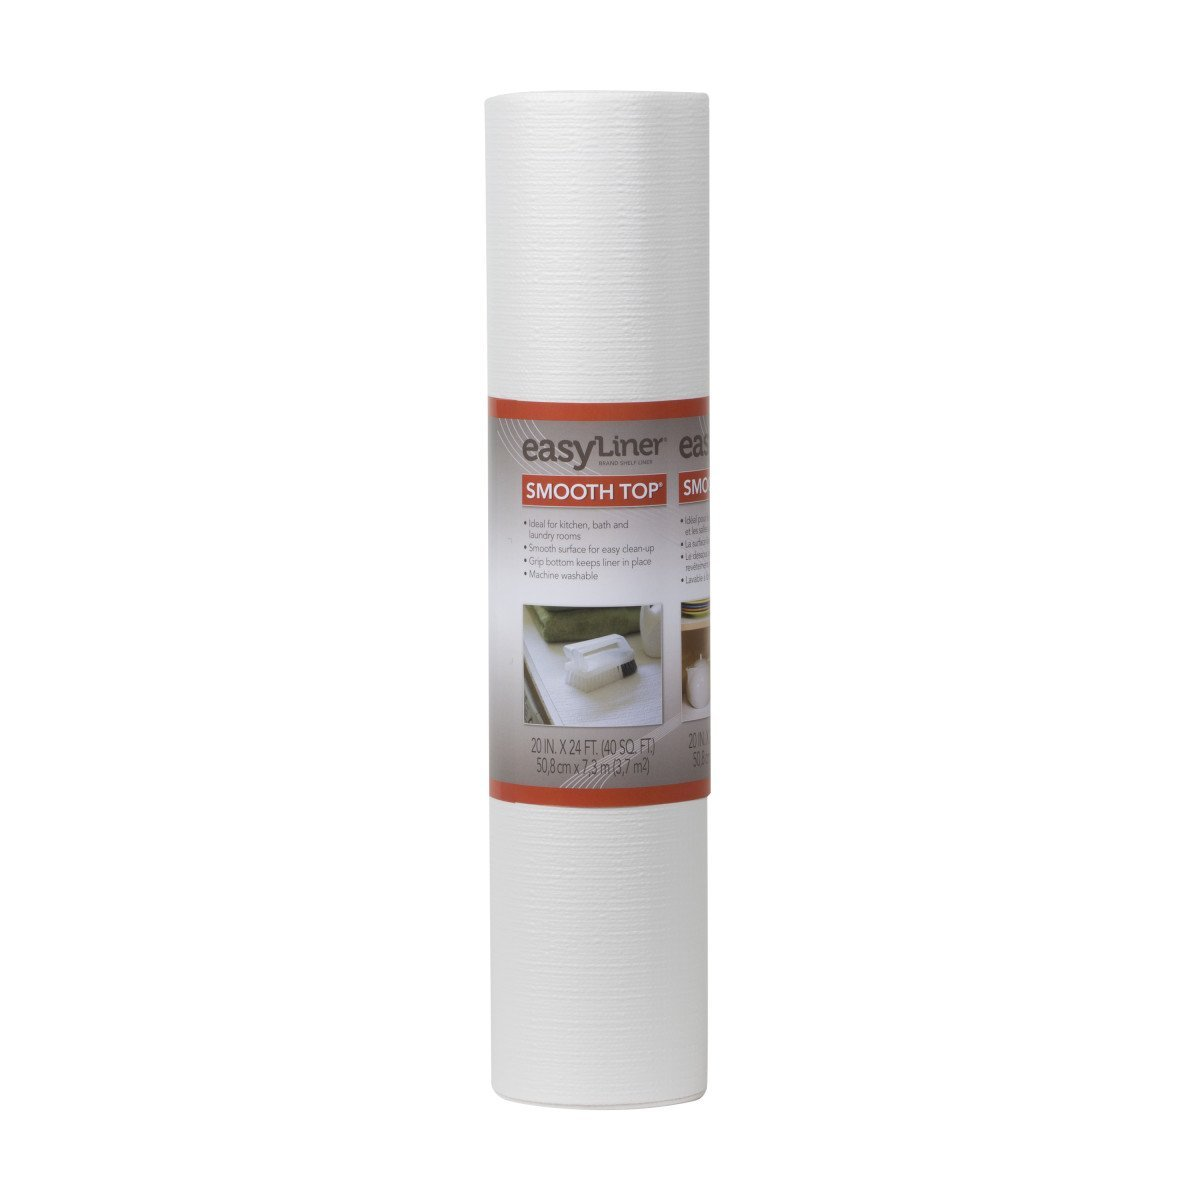 Duck Brand Smooth Top Easyliner Non Adhesive Shelf Liner For Kitchen Cabinets 20 Inch X 24 Feet White 281872